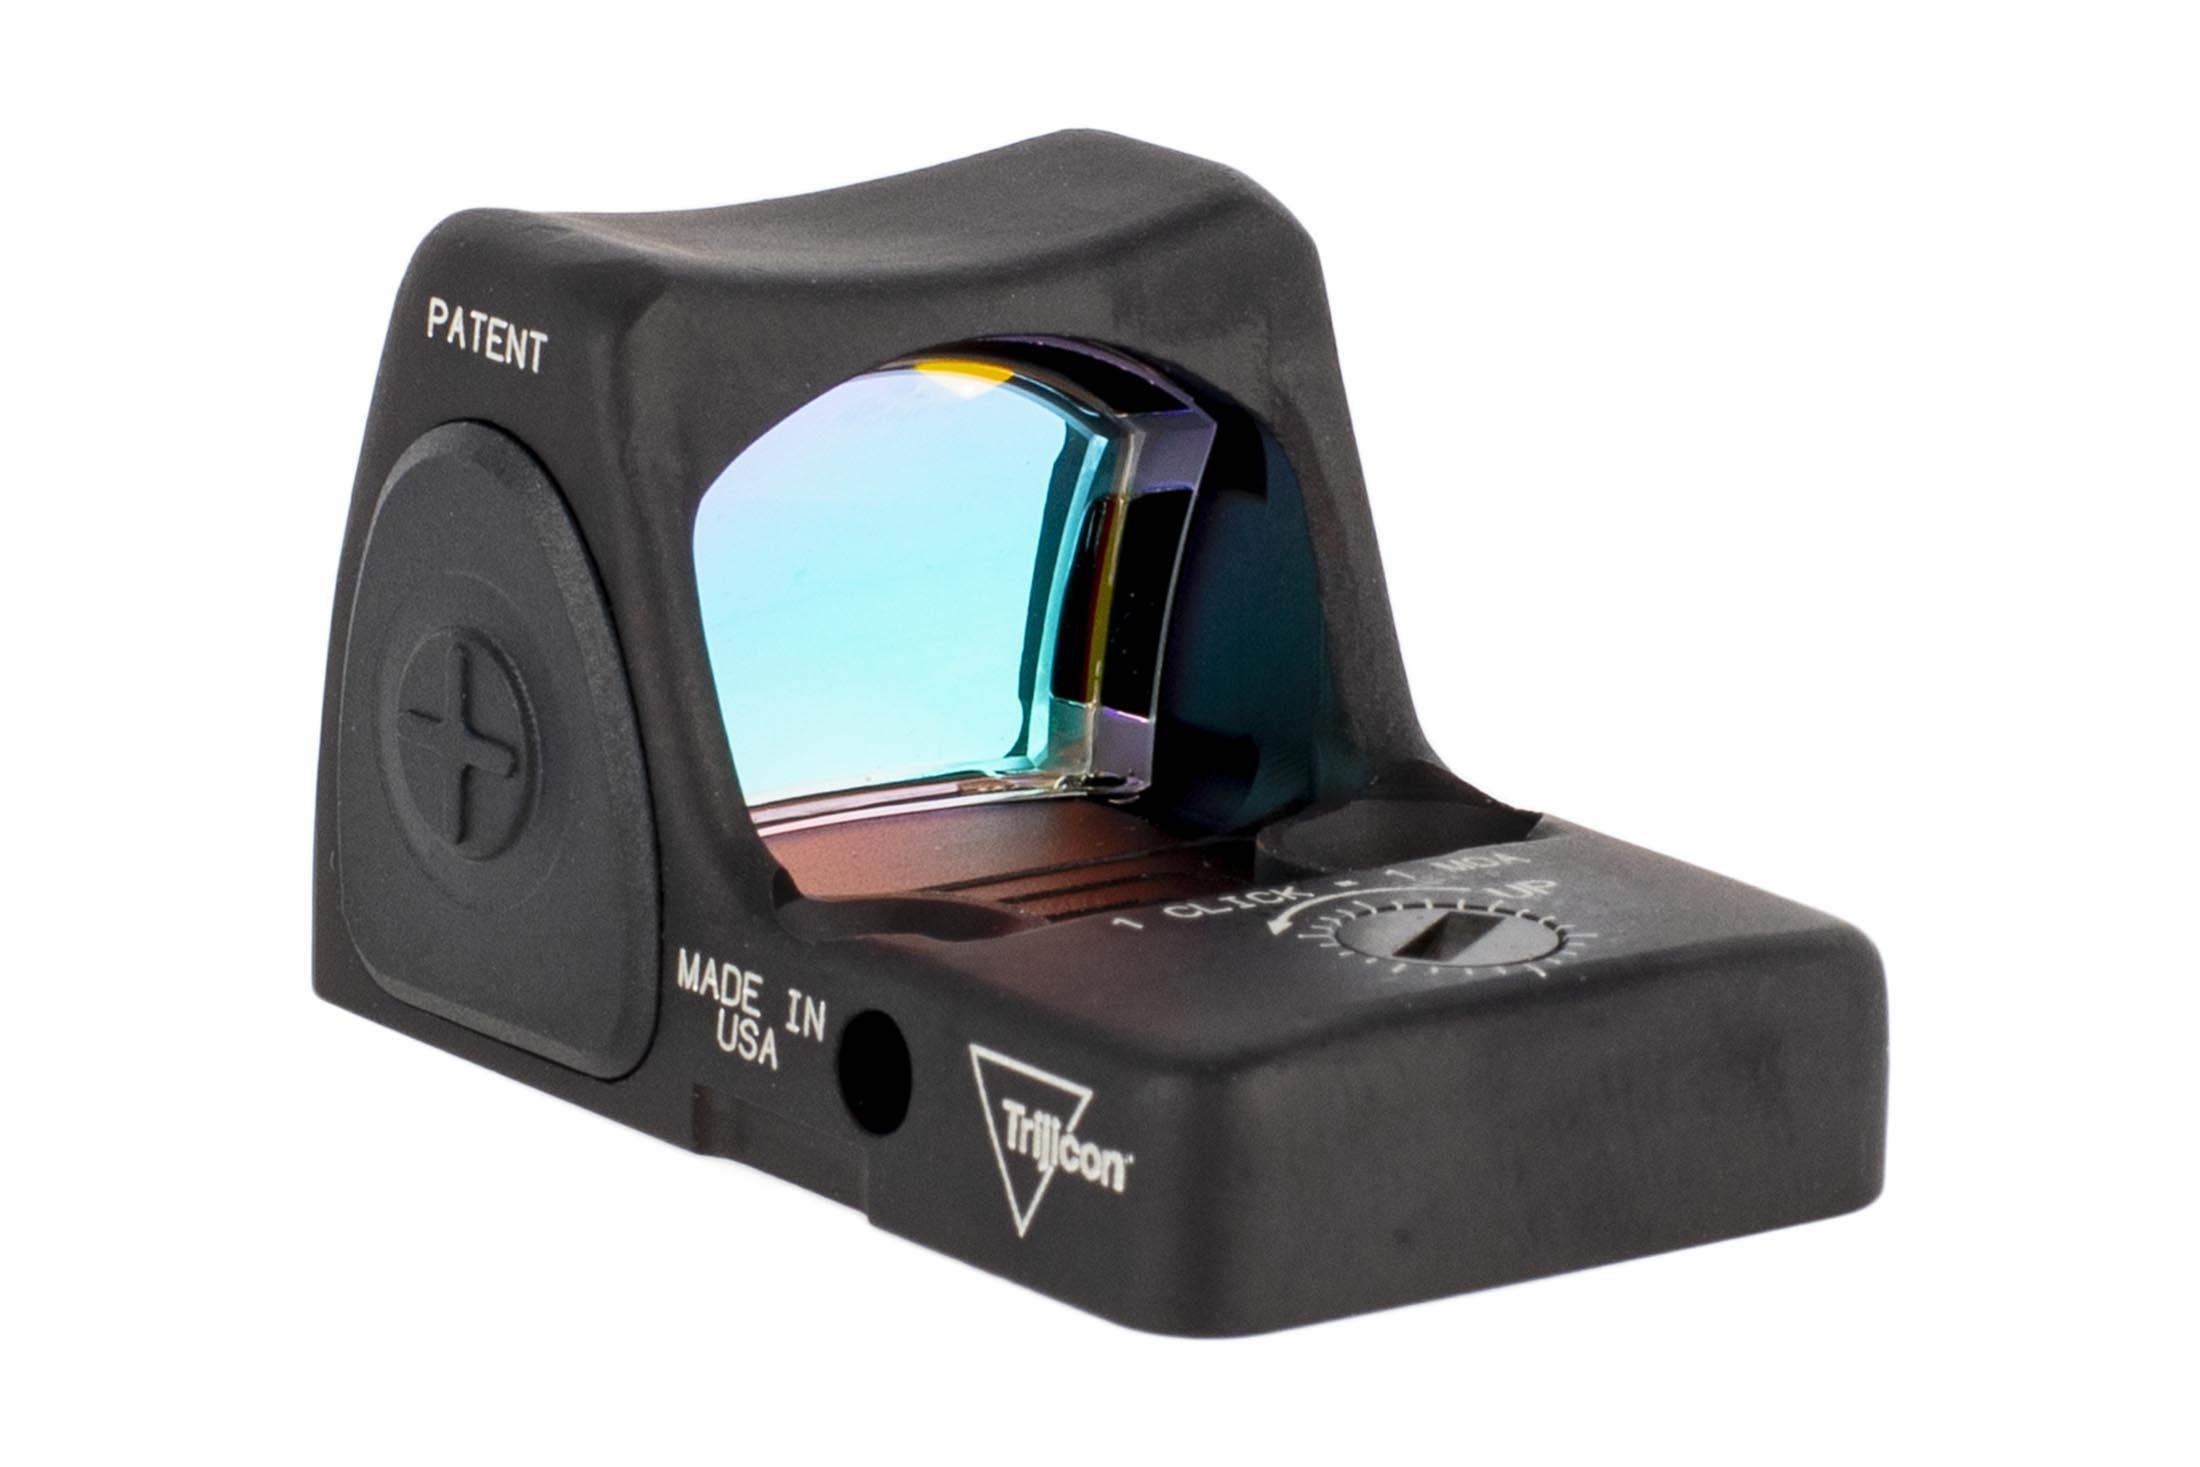 The Trjicon RM09 1 MOA red dot reflex sight for sale features 1 moa adjustable elevation and windage